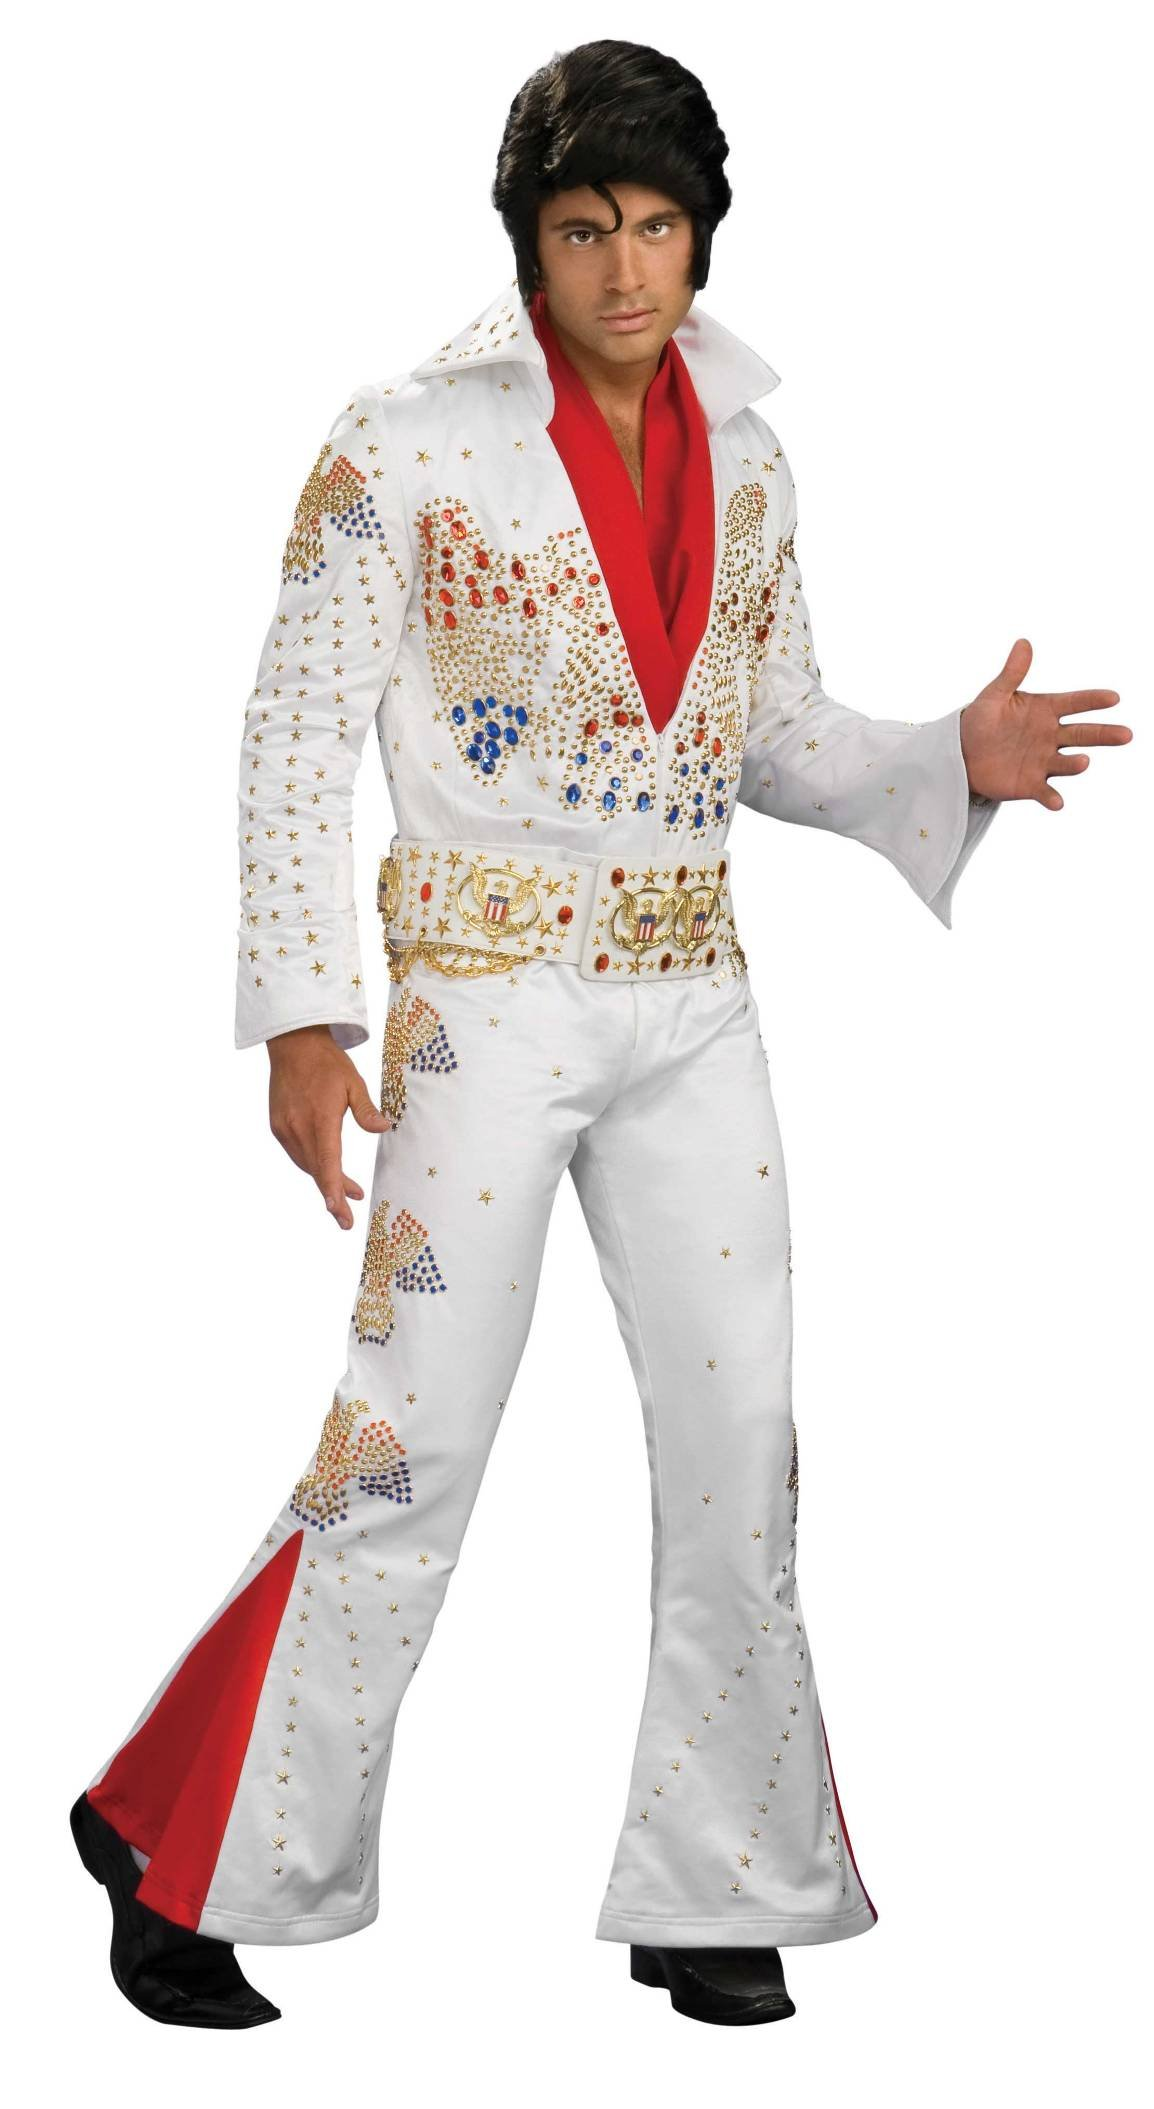 Elvis Aloha From Hawaii Collector Jumpsuit Costume, XL